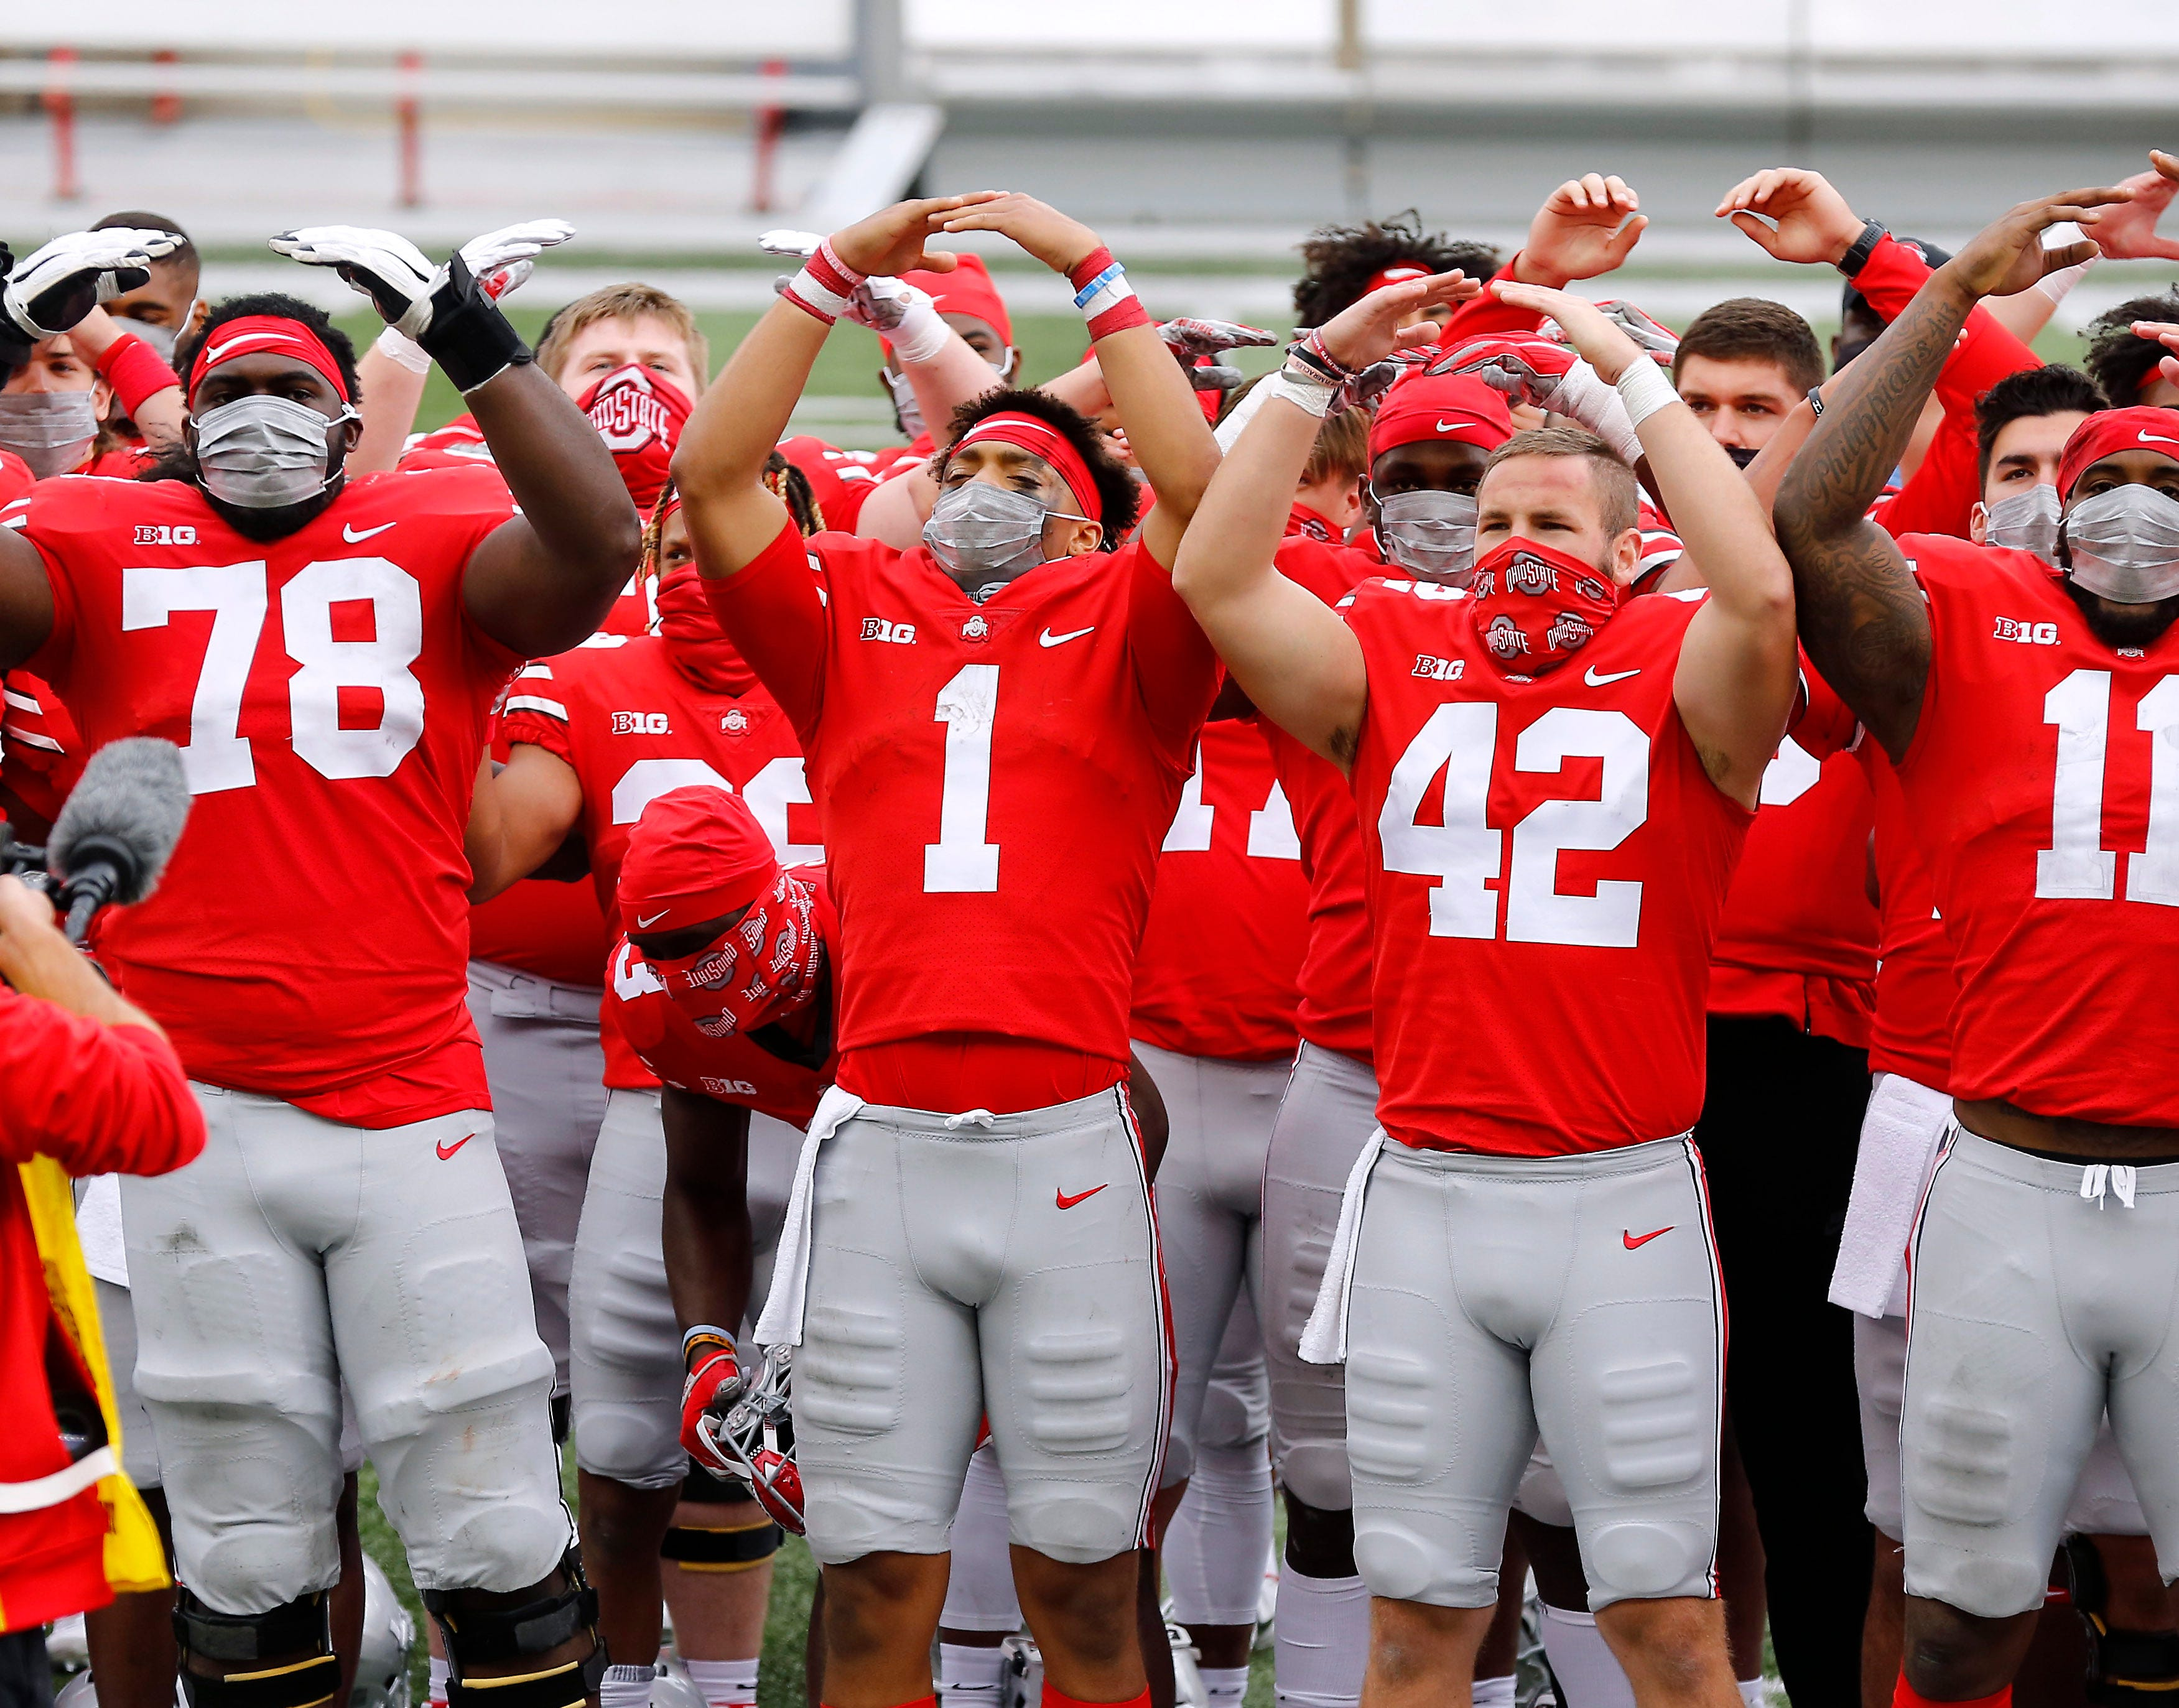 Big Ten power rankings: Ohio State stays on top while Penn State falls